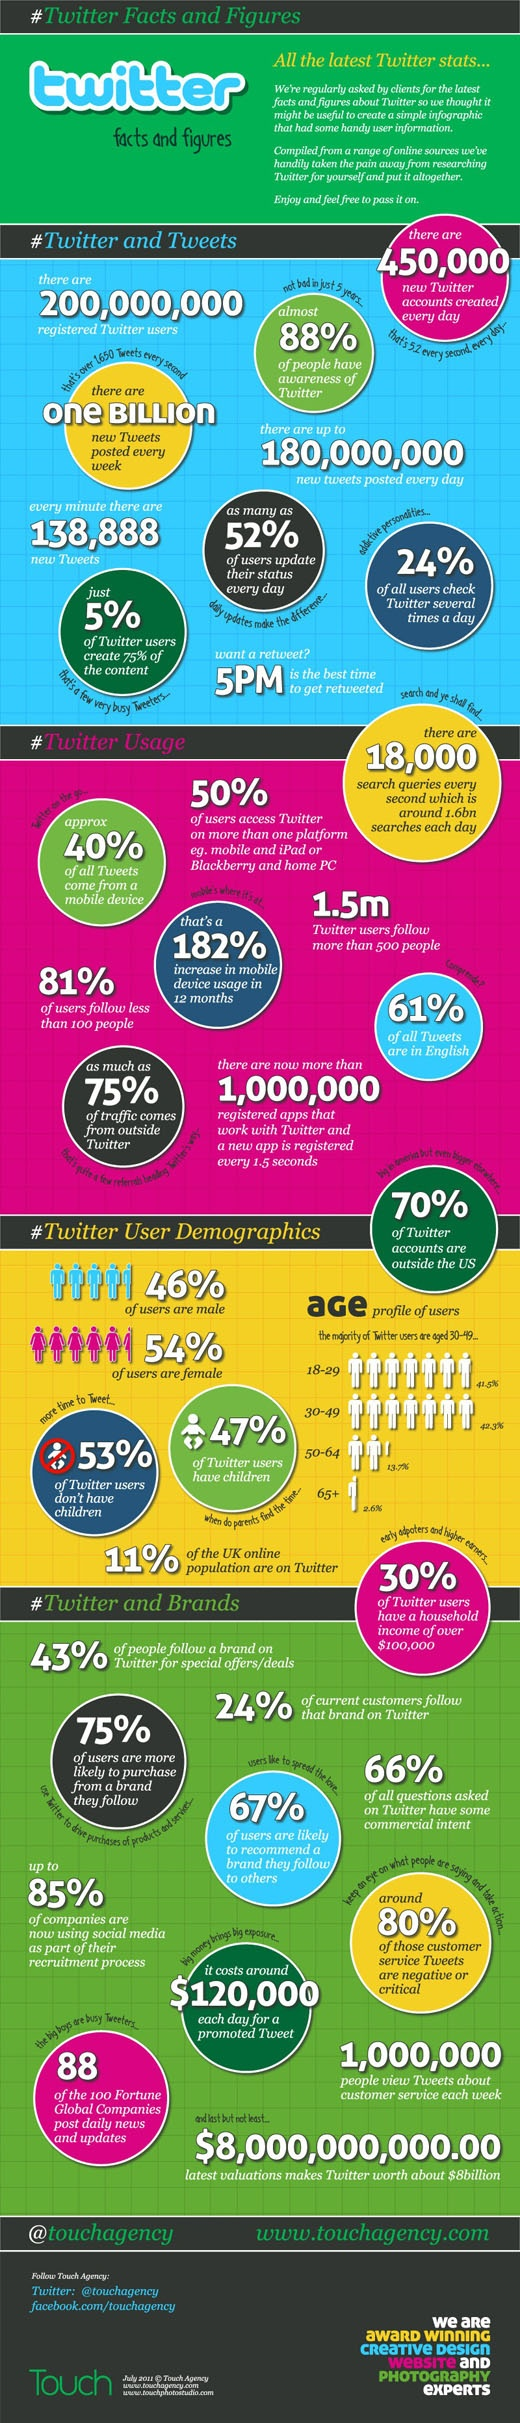 All the latest Twitter stats